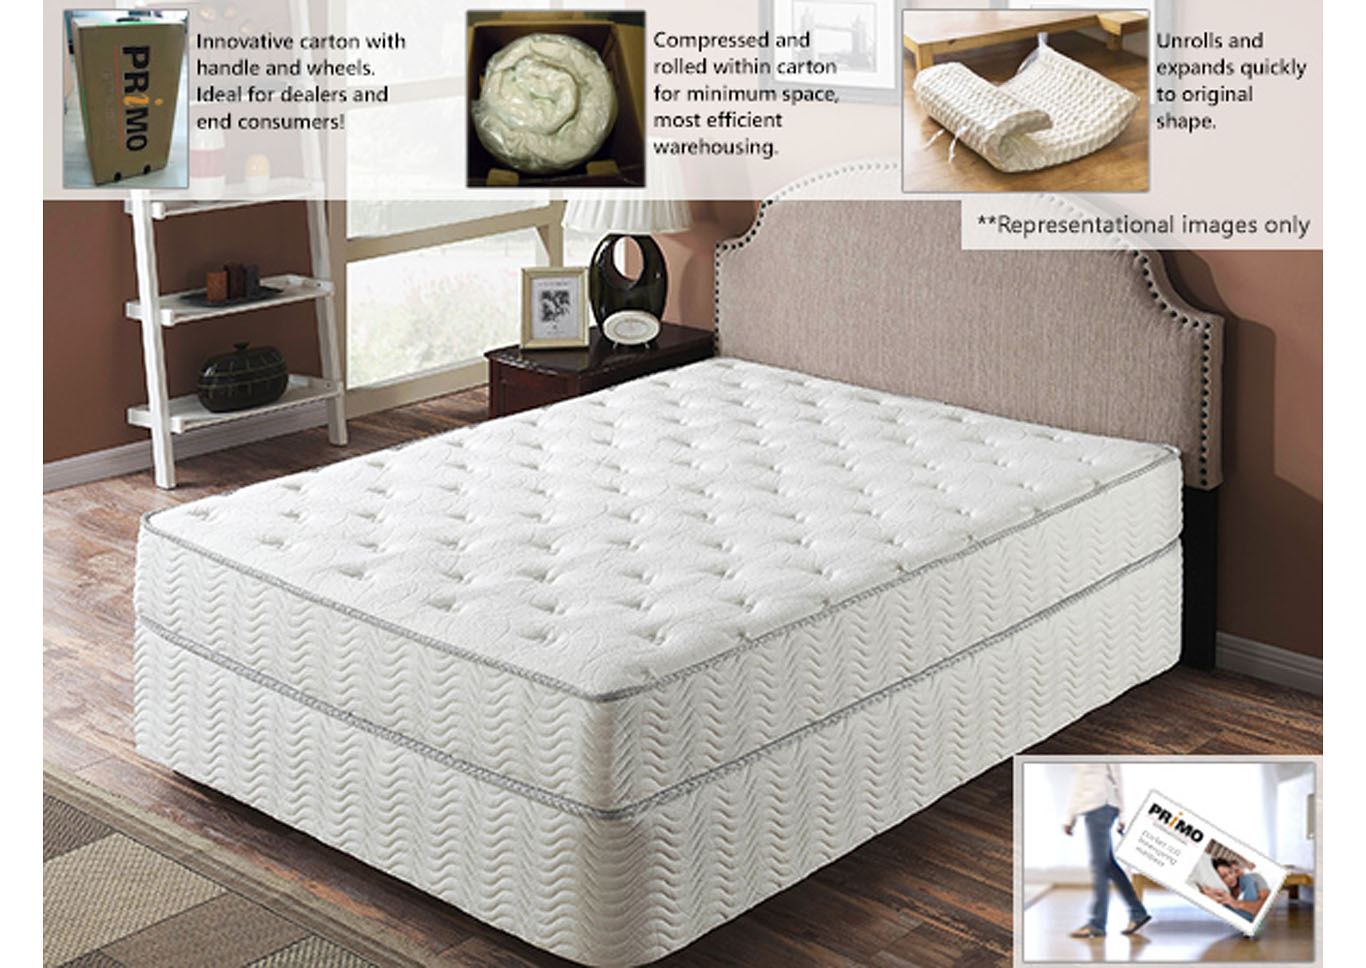 Galaxy 9 Inch Mattress And Foundation Full,Instore